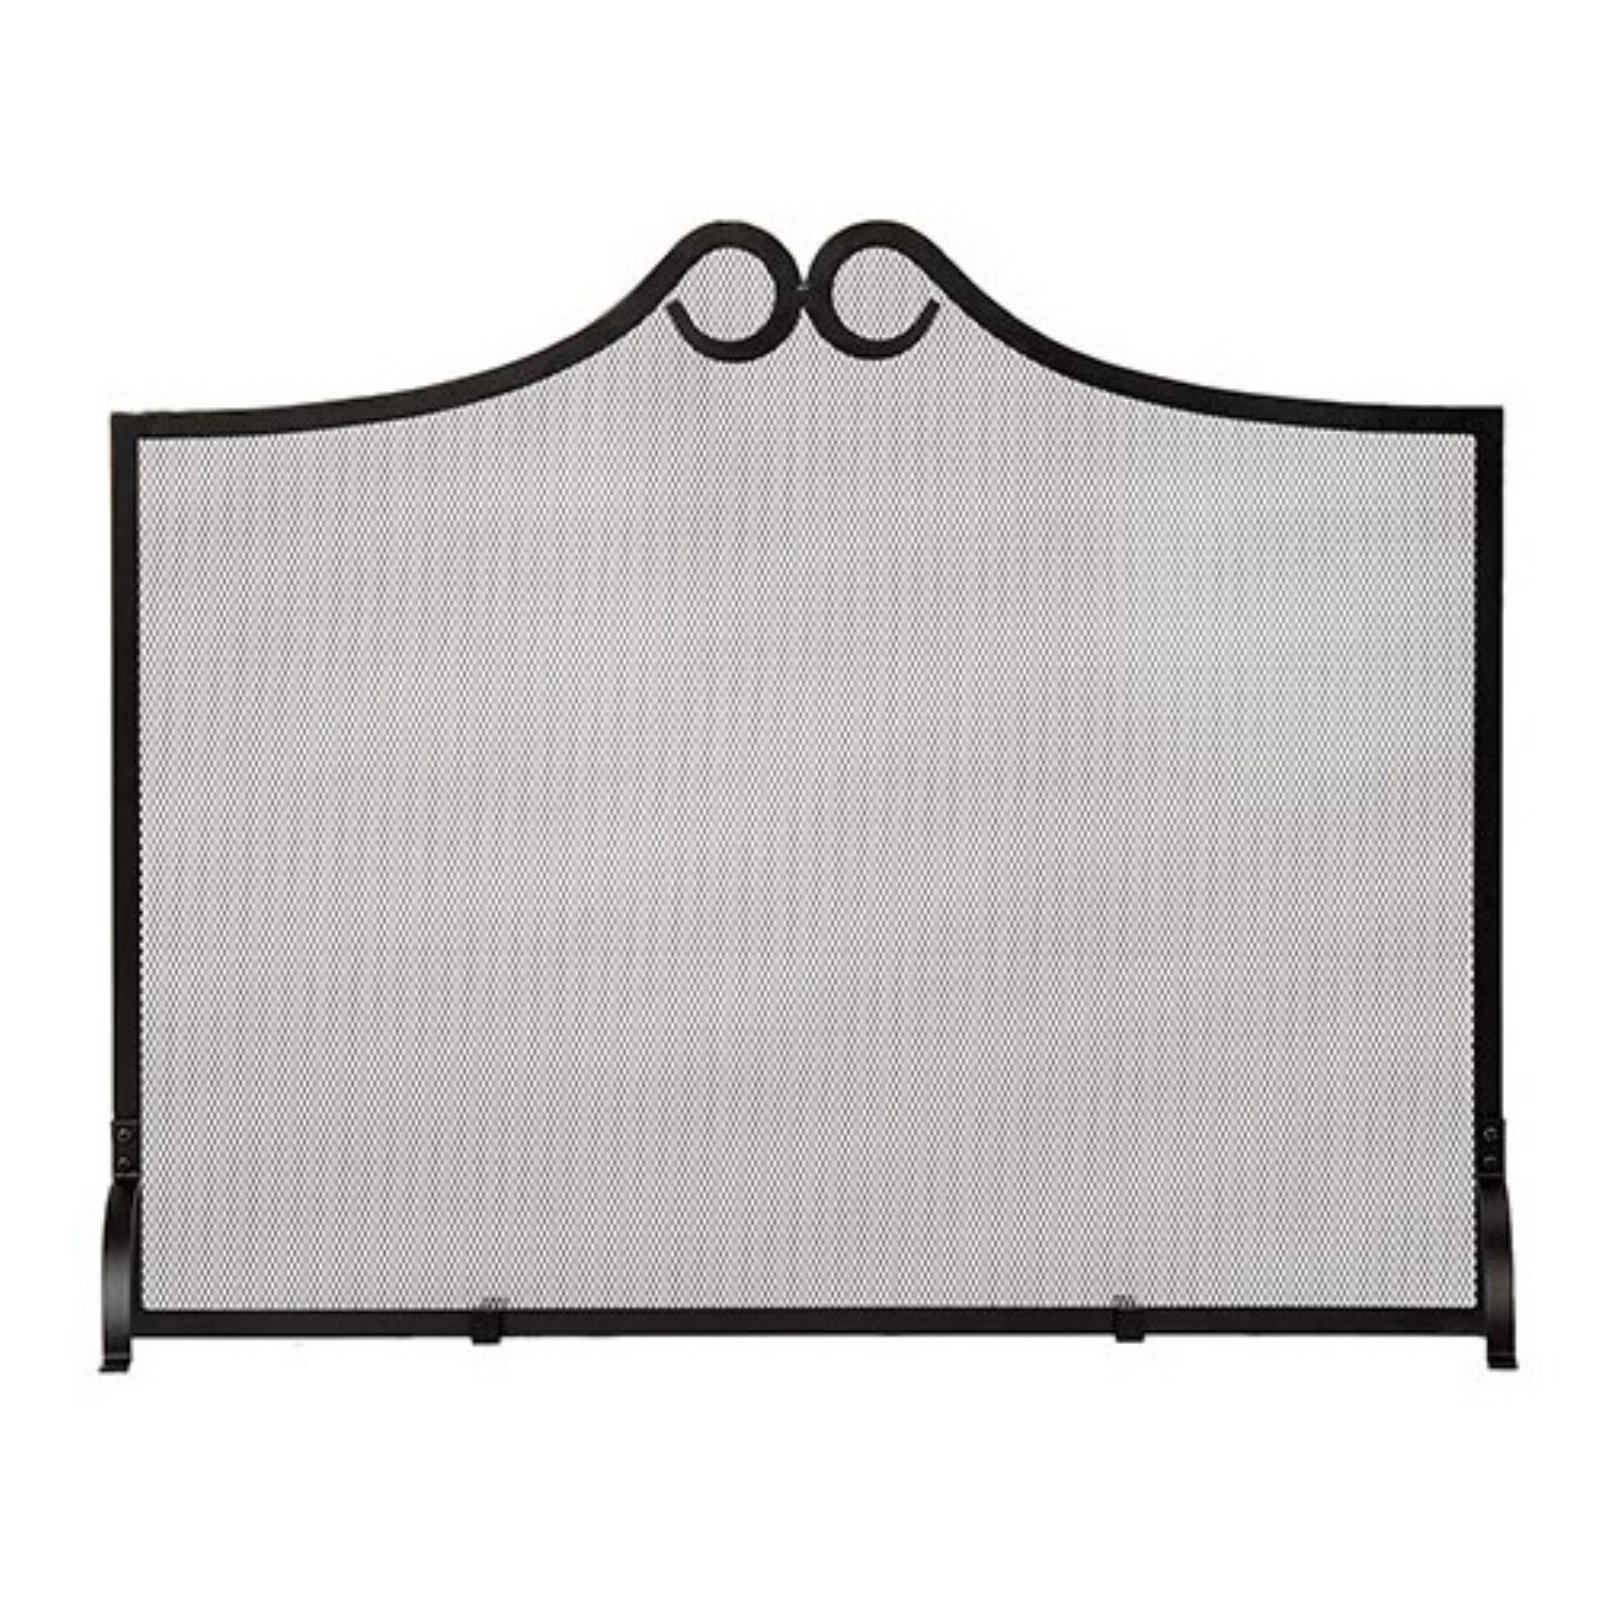 Image of Minuteman International Loops Flat Fireplace Screen - 38 x 31 in.